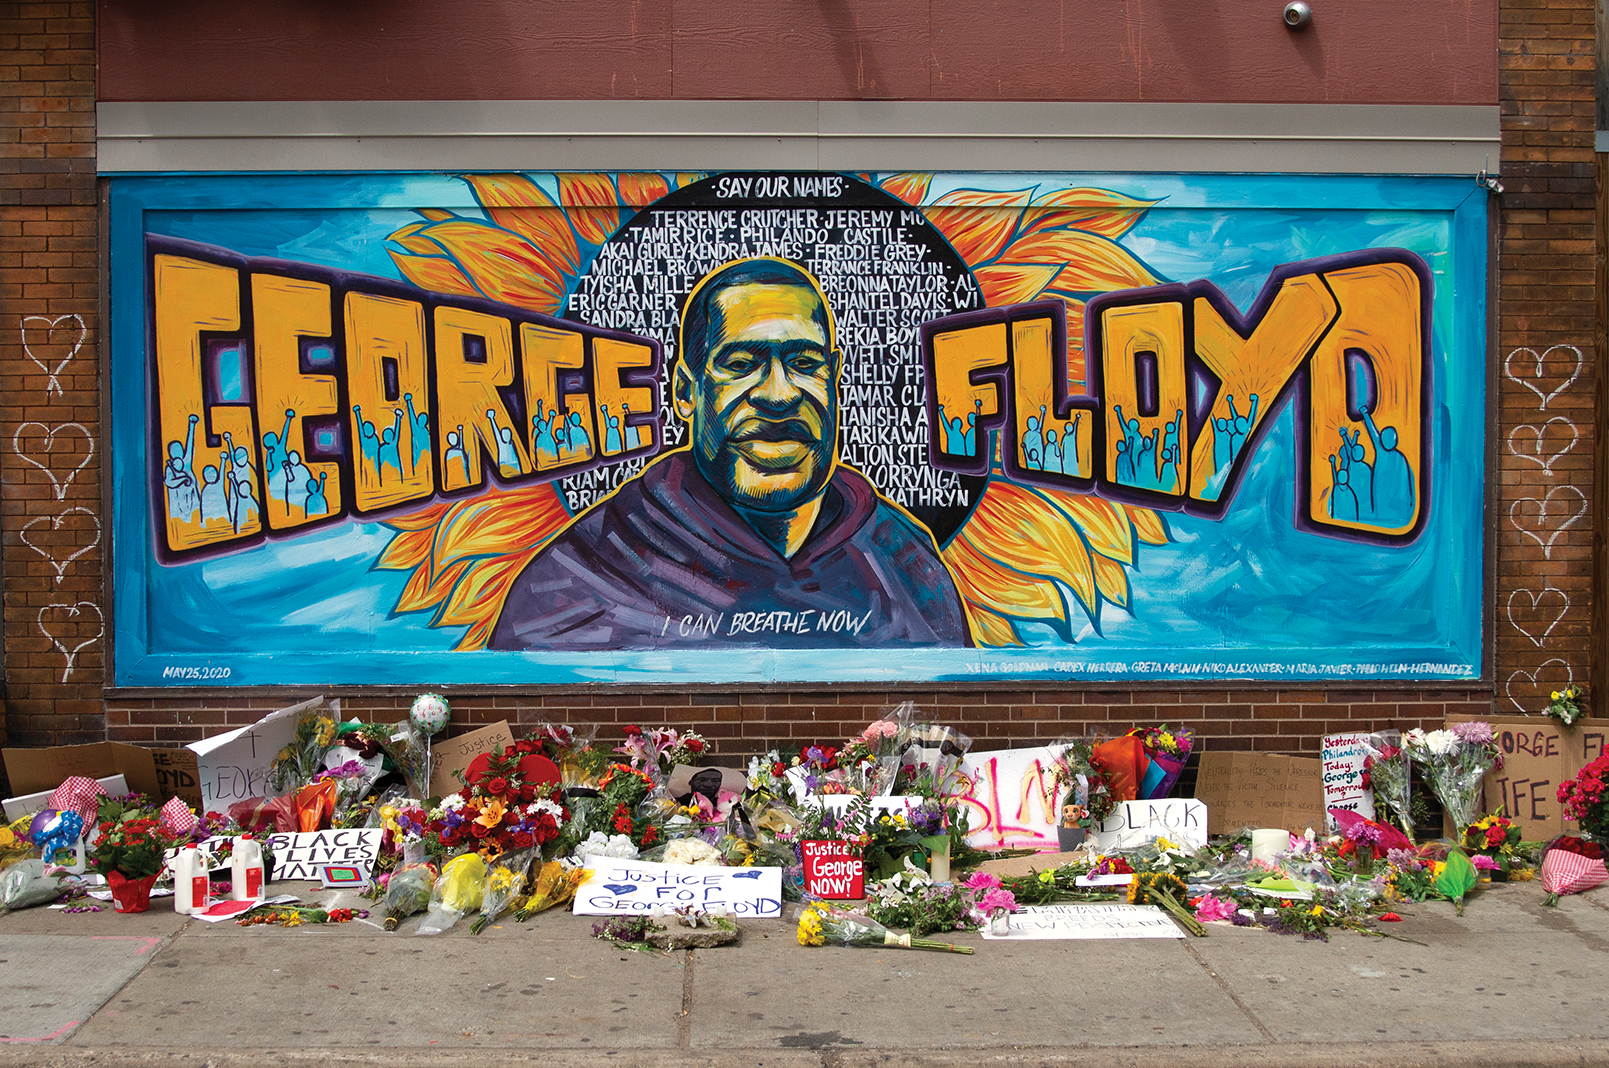 The mural of George Floyd that appeared on the side of Cup Foods on May 29